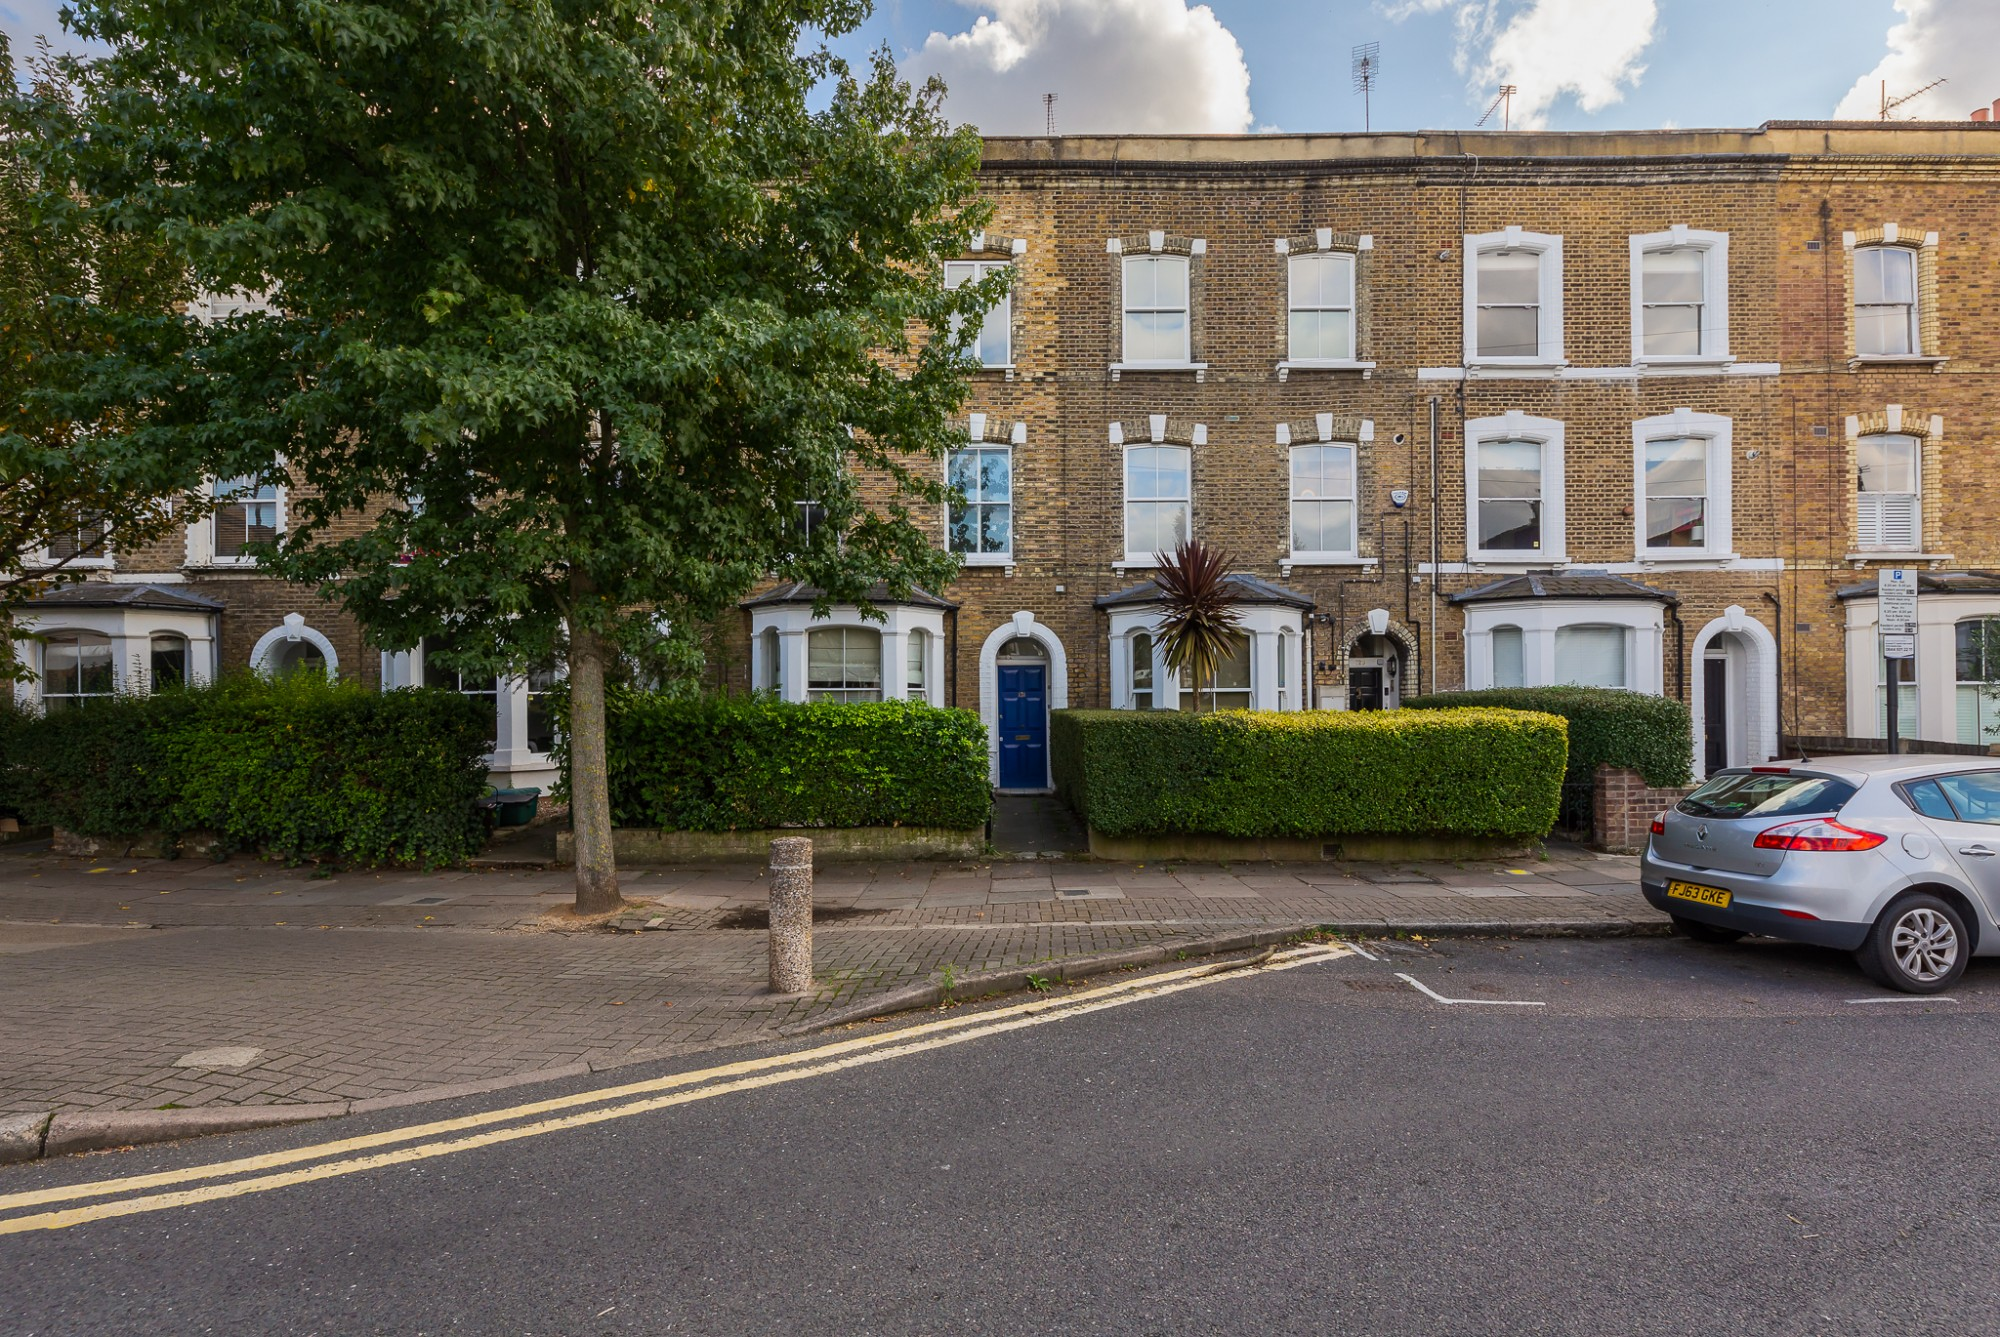 Images for Riversdale Road, N5 2SU EAID:931013c273837aec744cf2e7889cb460 BID:3